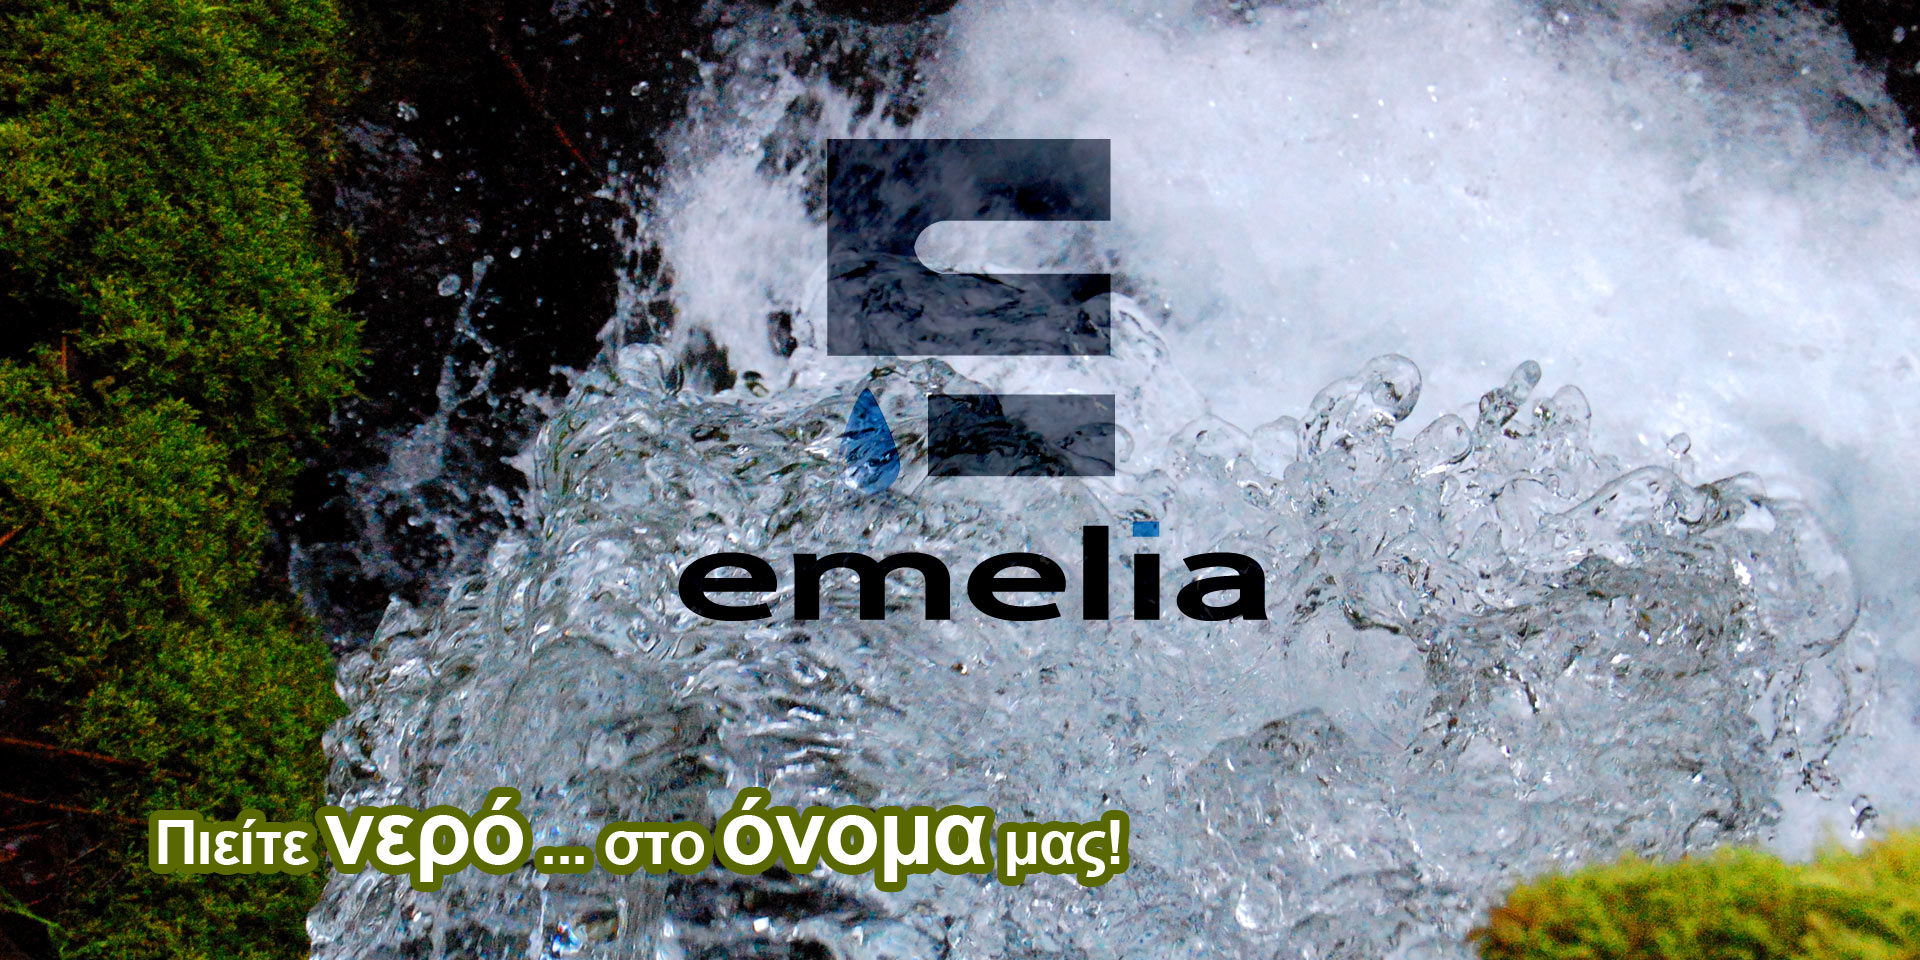 emelia-water-nero-nero-sto-onoma-mas-with-logo